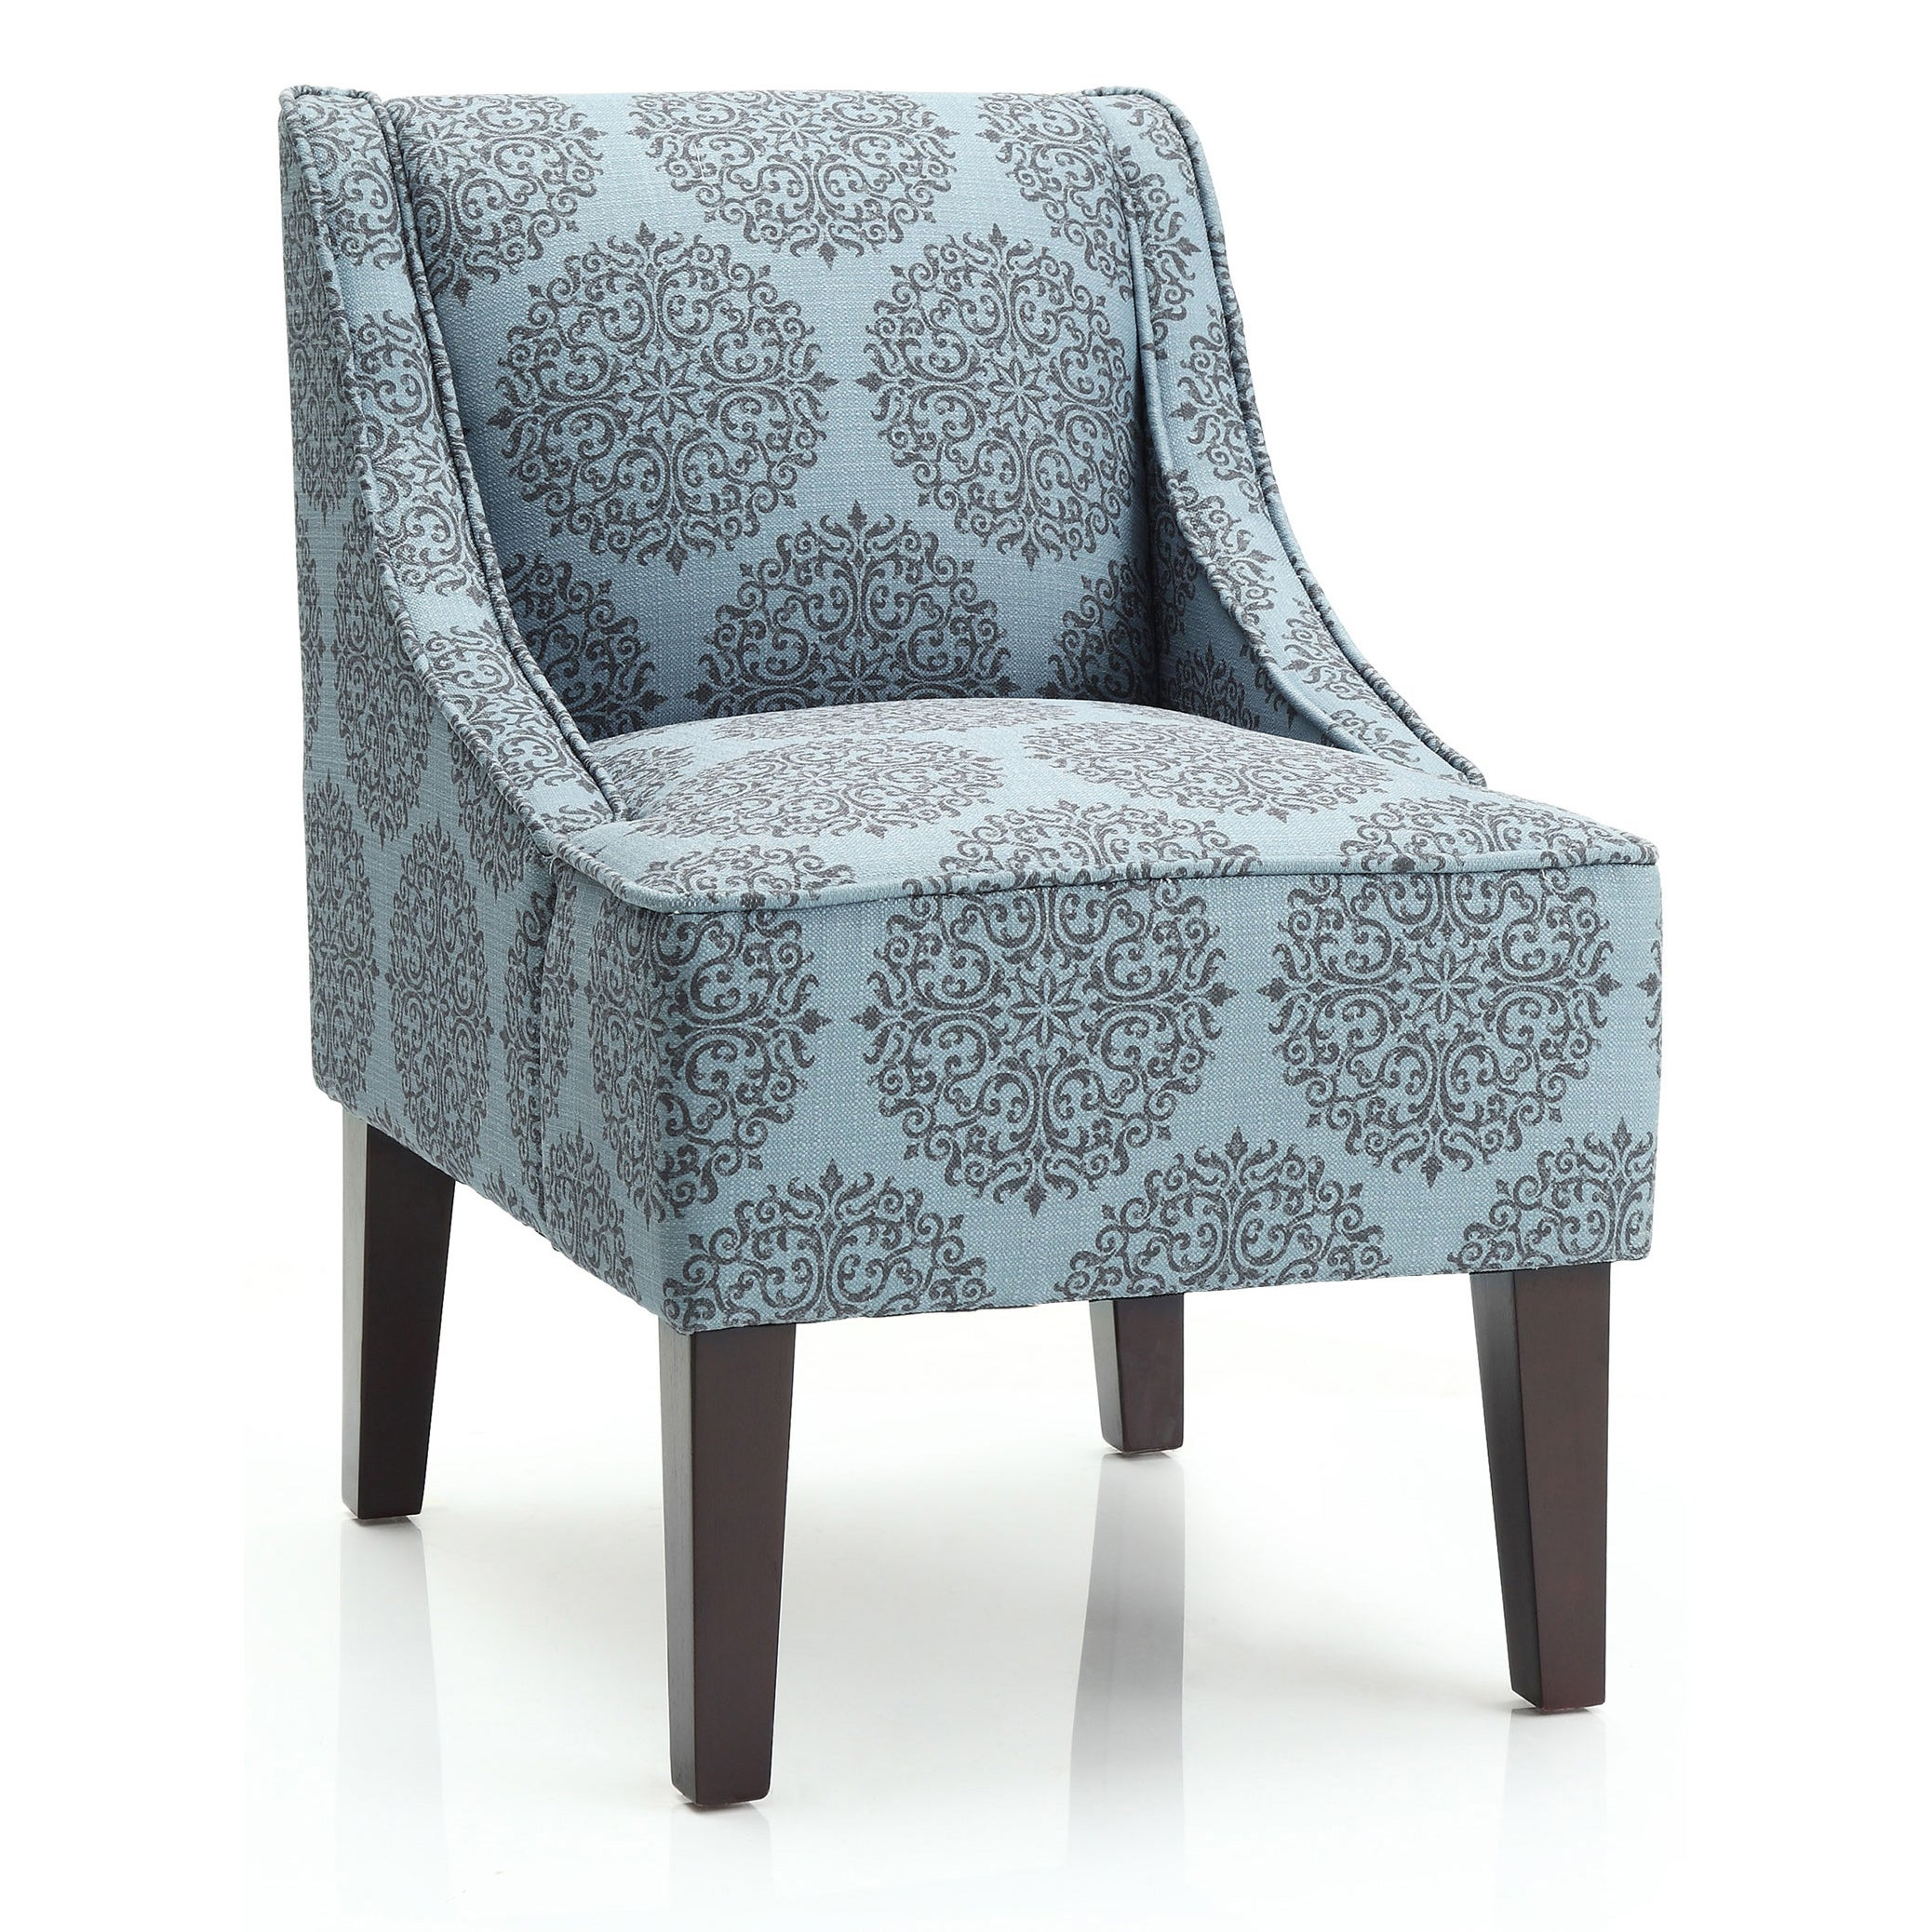 Free Interior Small Accent Chairs For Bedroom For Comfy: Shop Marlow Gabrieel Accent Chair